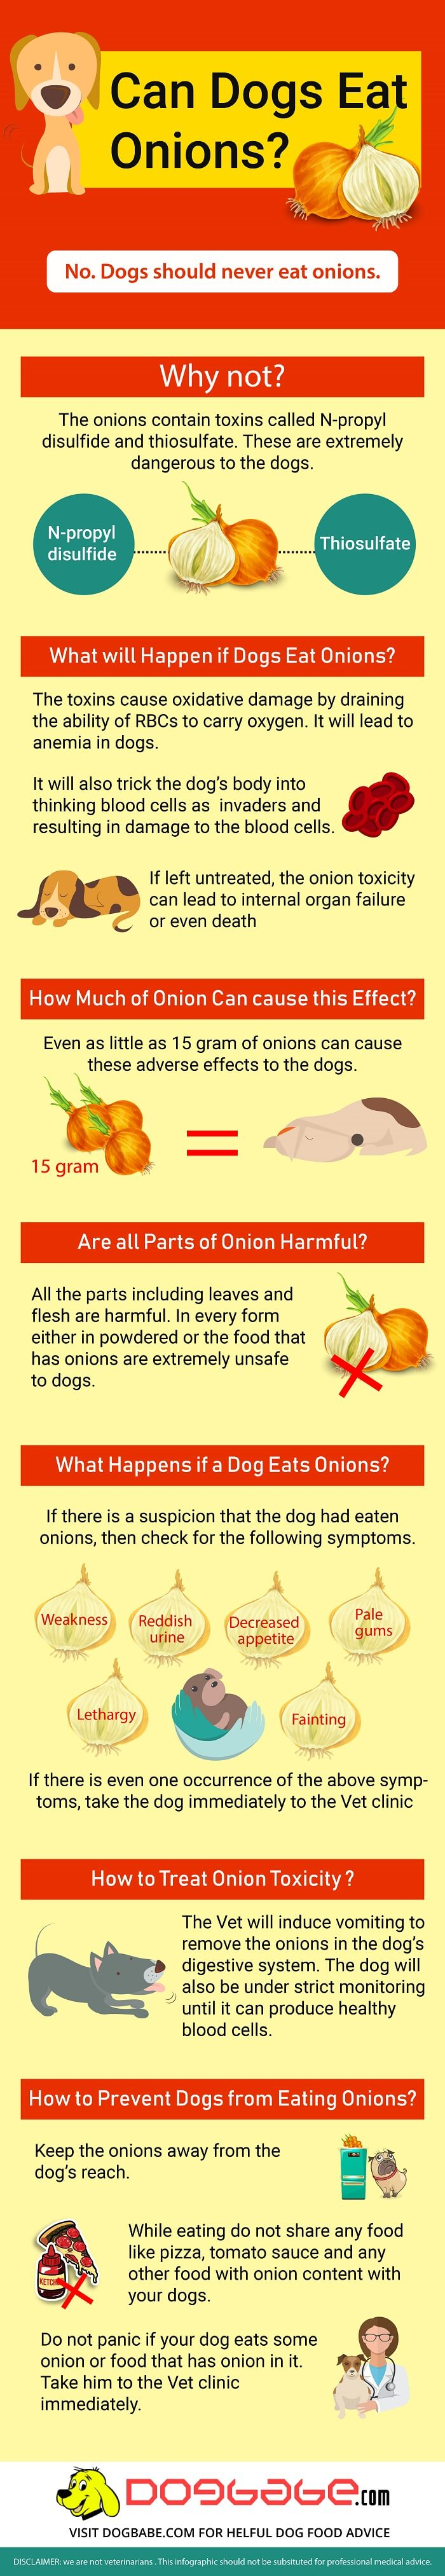 can dogs eat onions - infographics